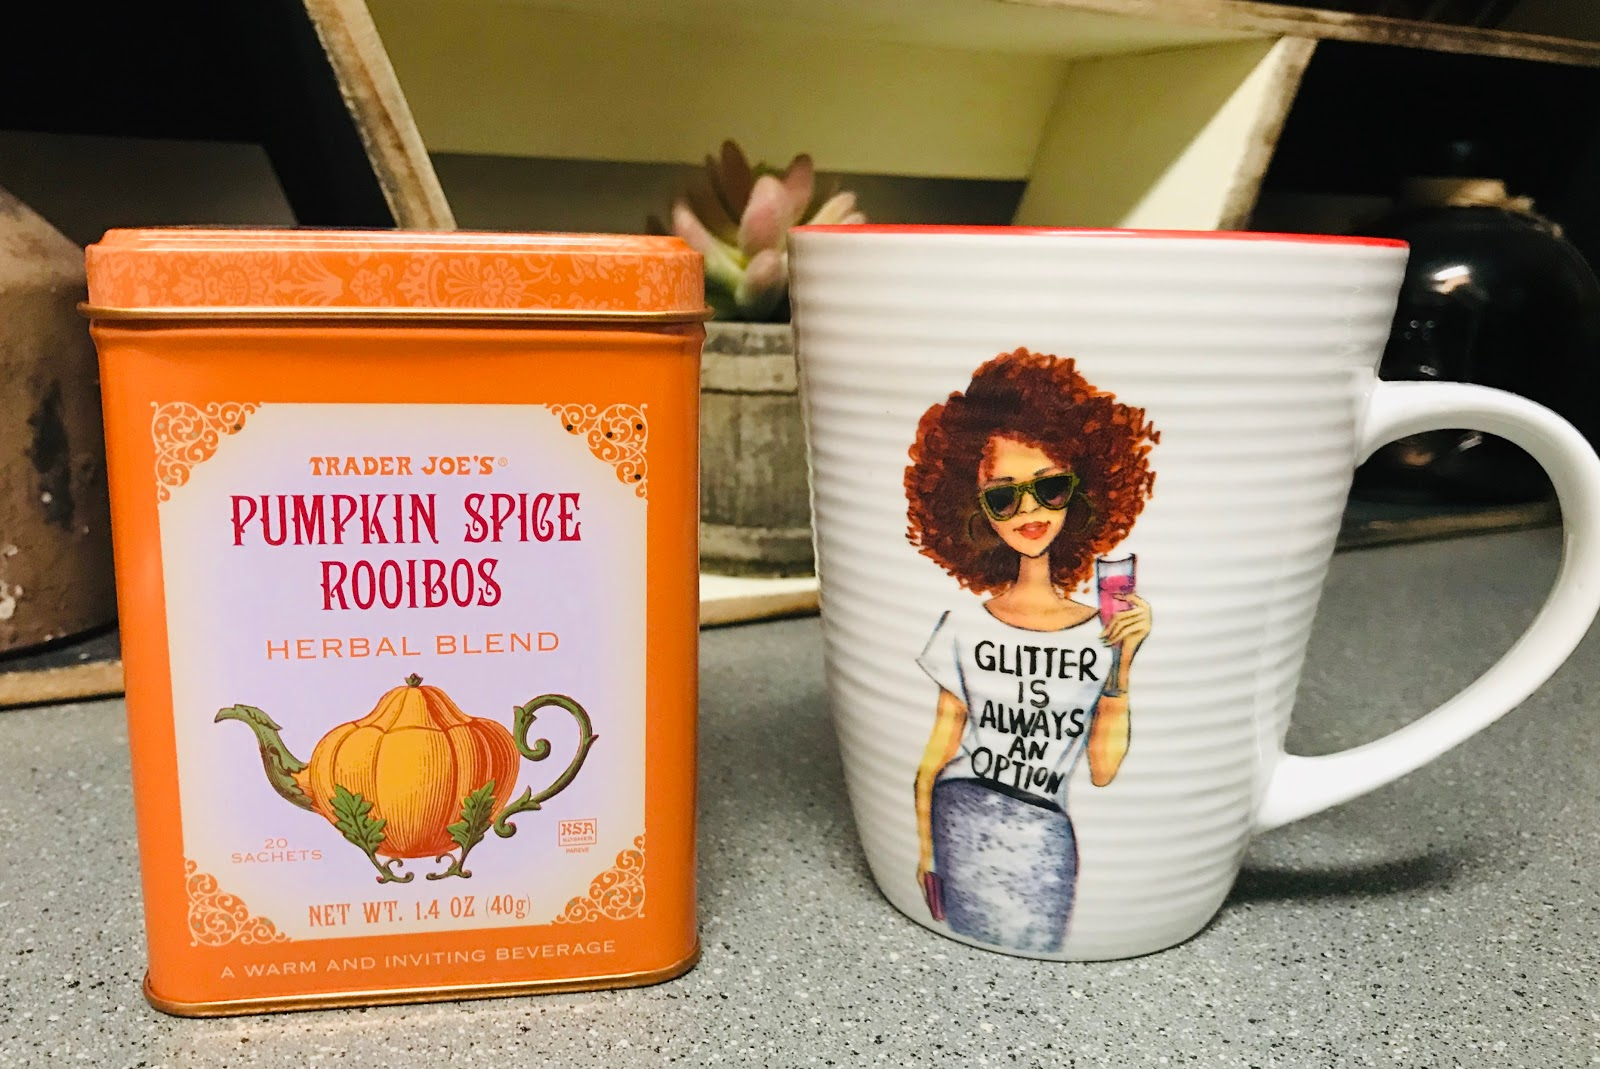 Image:Pumkin Tea from Trader Joe's, Coffee Cup From TJMAX. Woman Shares her weekend bits and favorites.   Trader Joe's was my first hit to grab a few things I needed for my household, I couldn't resist grabbing The Pumpkin Spice Roibus Tea. I am not making this up, but hands down the aroma when steeping is the best. I love the way it scents up the kitchen as the steam comes from the cup. DId someone say cup? Yes, I have a fetish with cute coffee/tea cups. But, I am trying to resist the urge to buy a dozen fall cups. I did grab the cutest little (Glitter is always optional) one. It was calling my name, so for $3.99 at TJMAX I felt it was worth the splurge. Oh and I thought the girl on the cup looked like a woman boss.